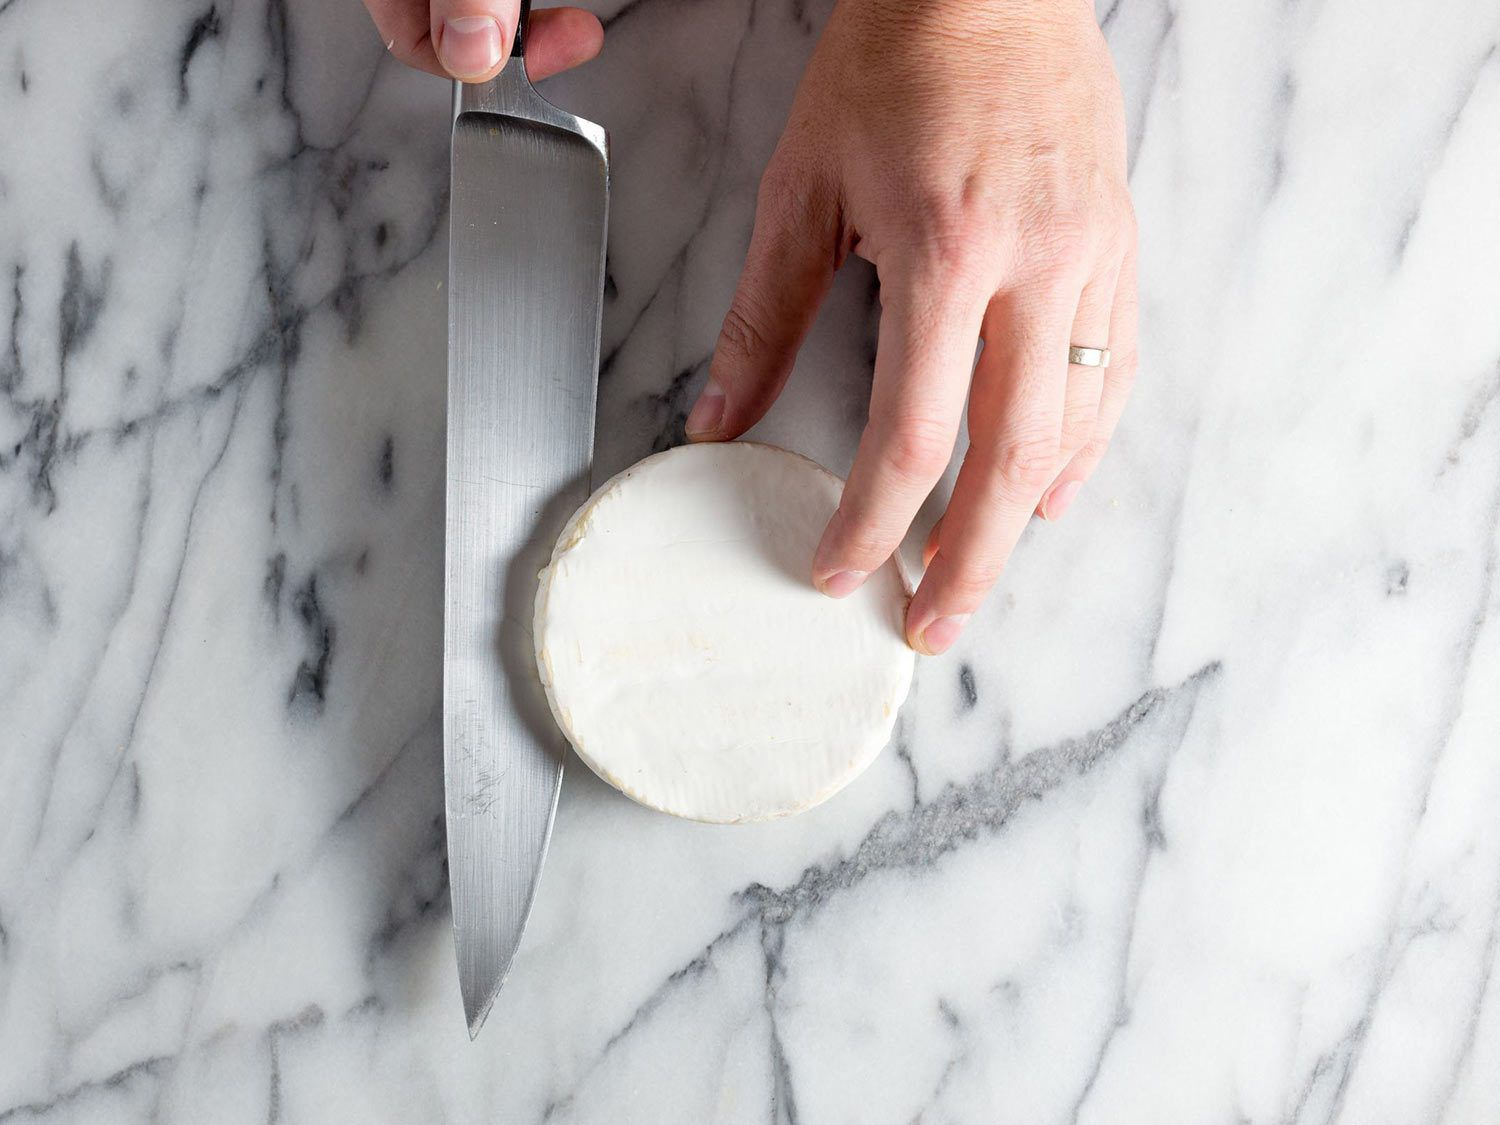 Slicing a round of brie in half.